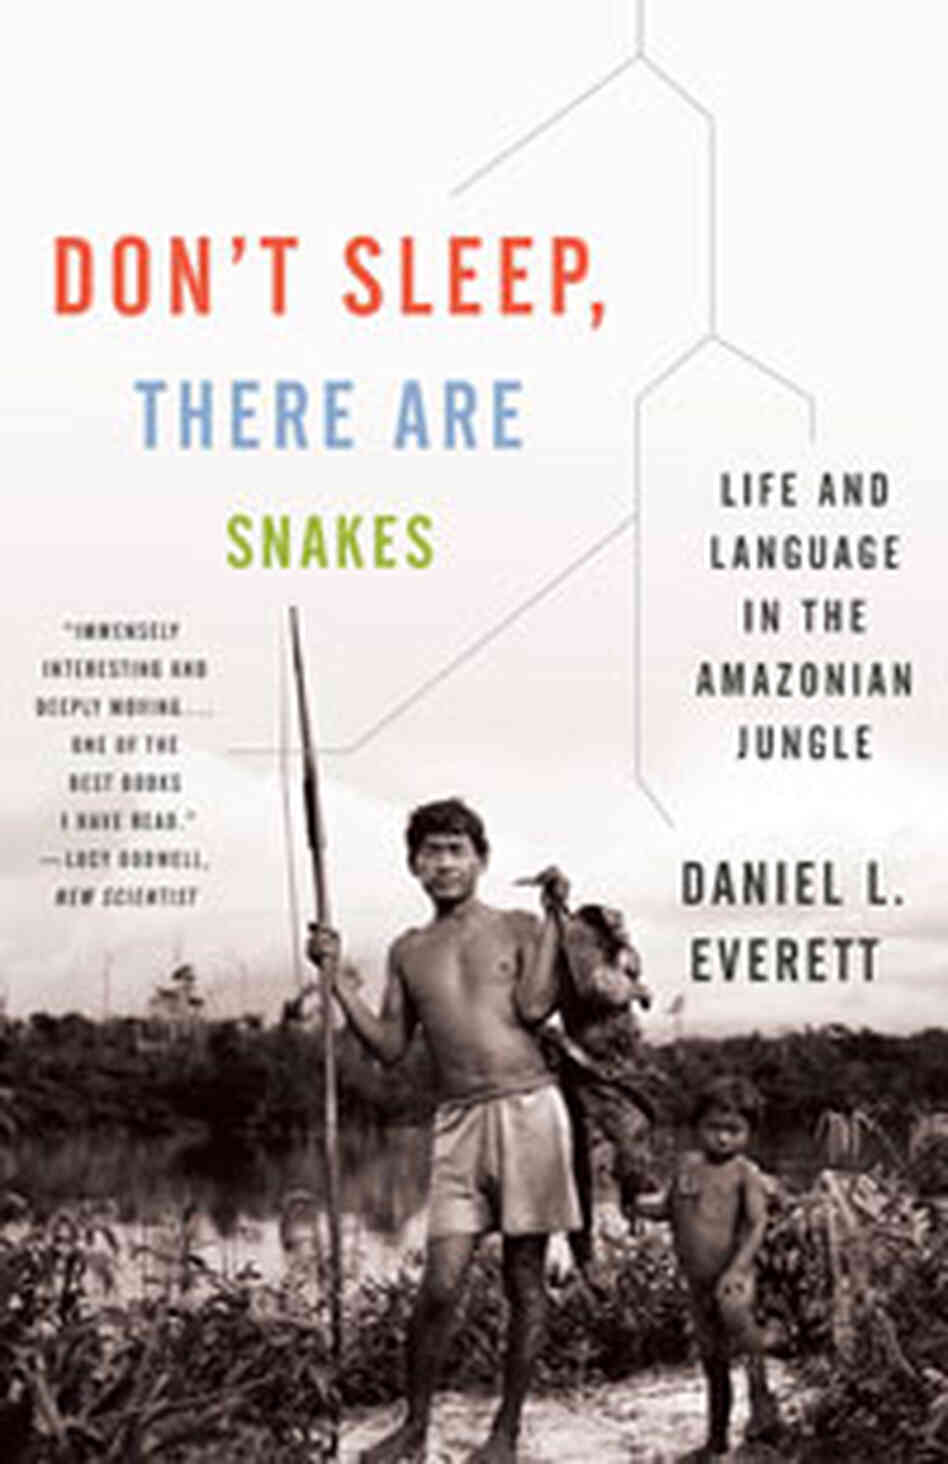 'Don't Sleep, There Are Snakes'